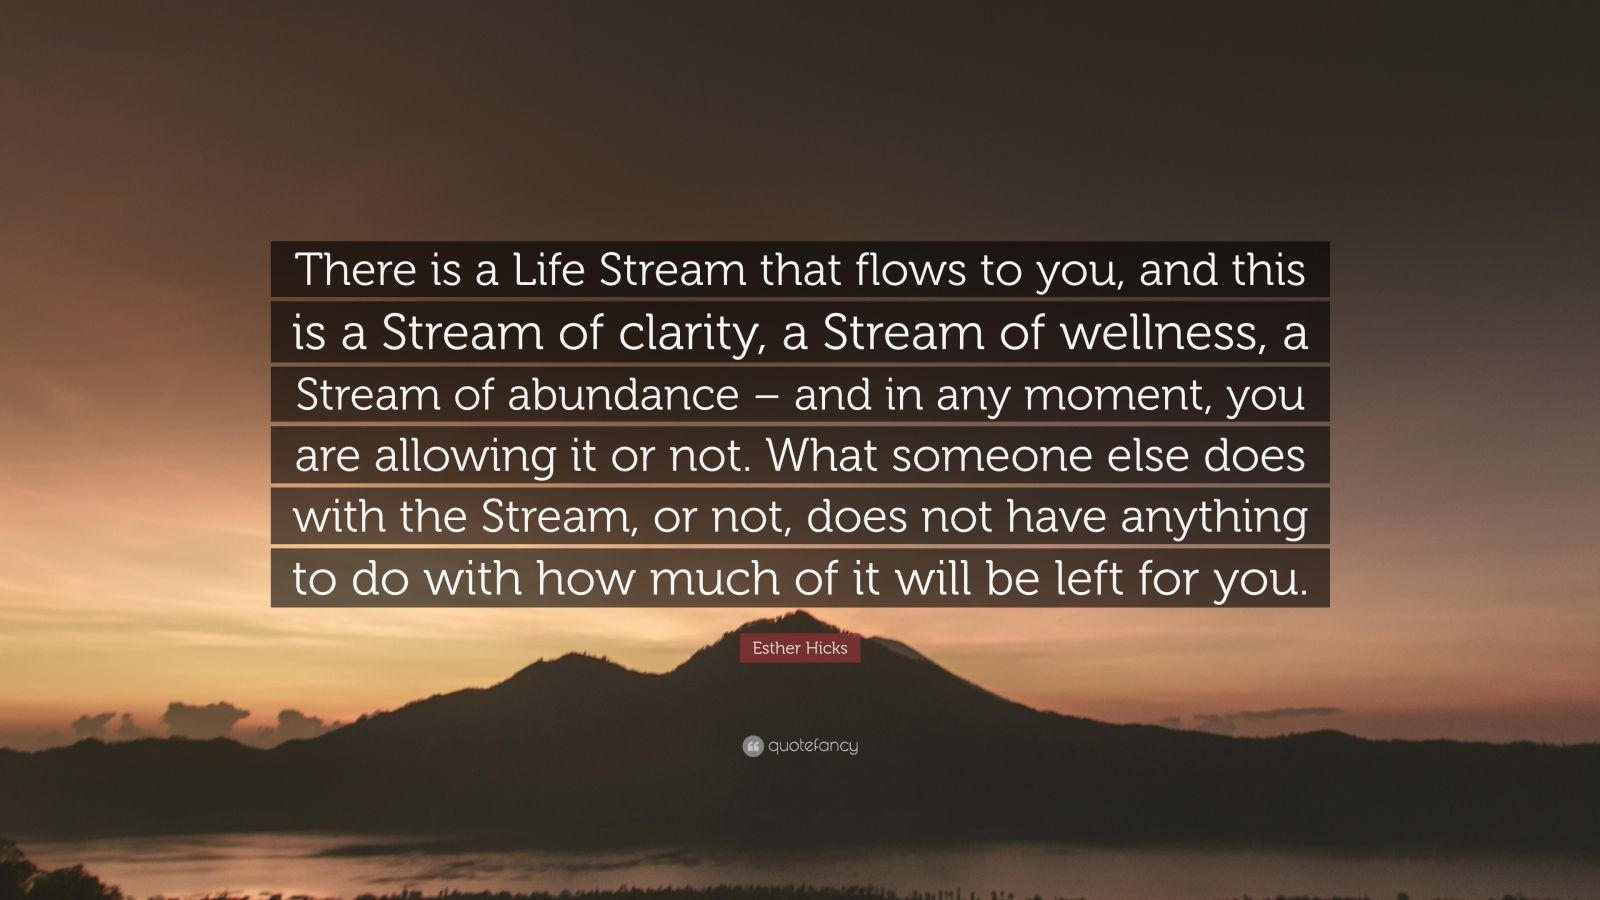 """Esther Hicks Quote: """"There is a Life Stream that flows to you, and this is a Stream of clarity, a Stream of wellness, a Stream of abundance – and in any moment, you are allowing it or not. What someone else does with the Stream, or not, does not have anything to do with how much of it will be left for you."""""""